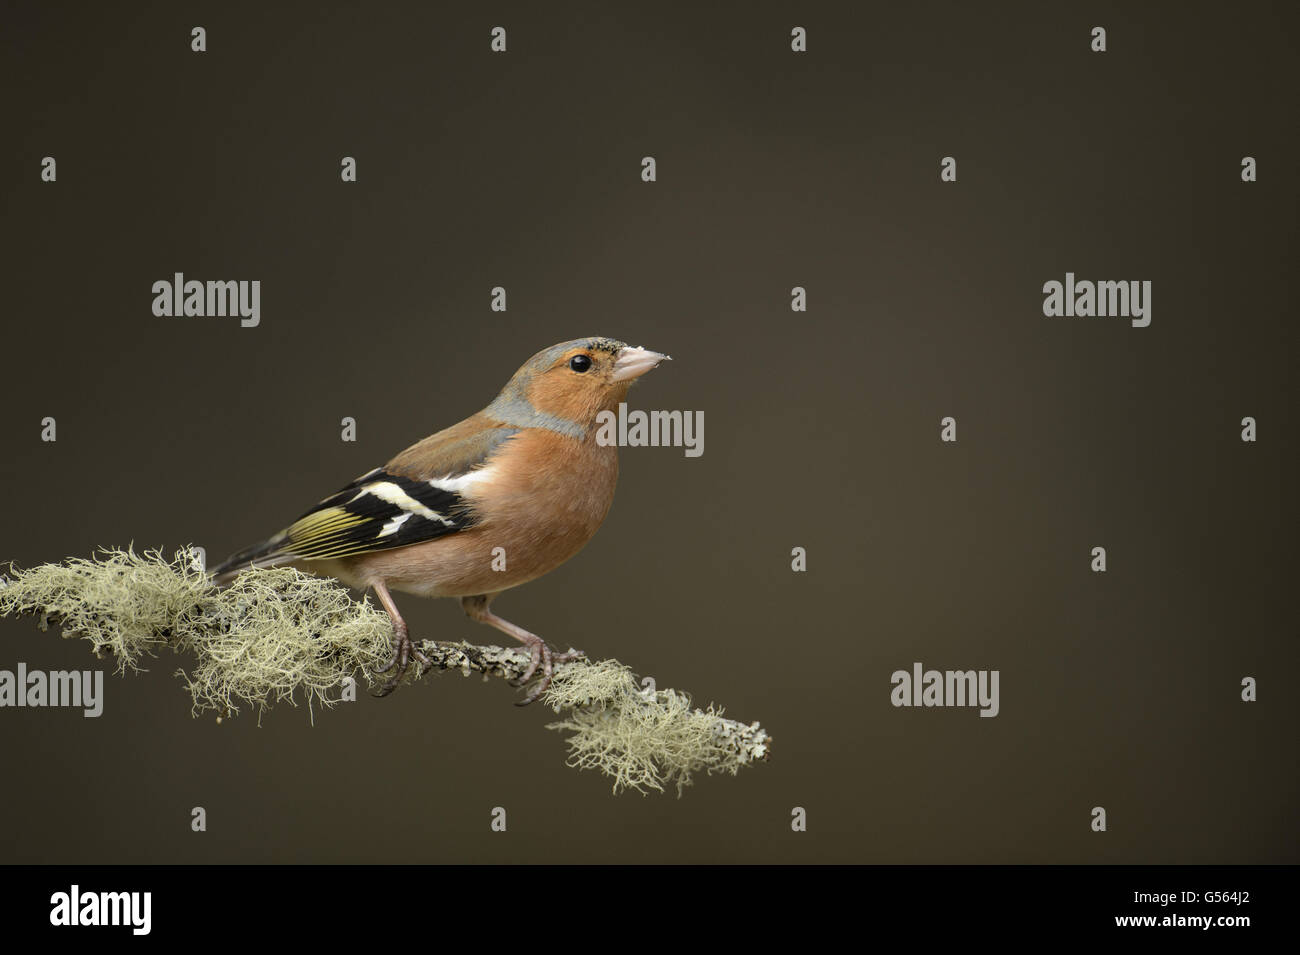 Common Chaffinch (Fringilla coelebs) adult male, perched on lichen covered twig, Abernethy Forest, Cairngorms N.P., - Stock Image